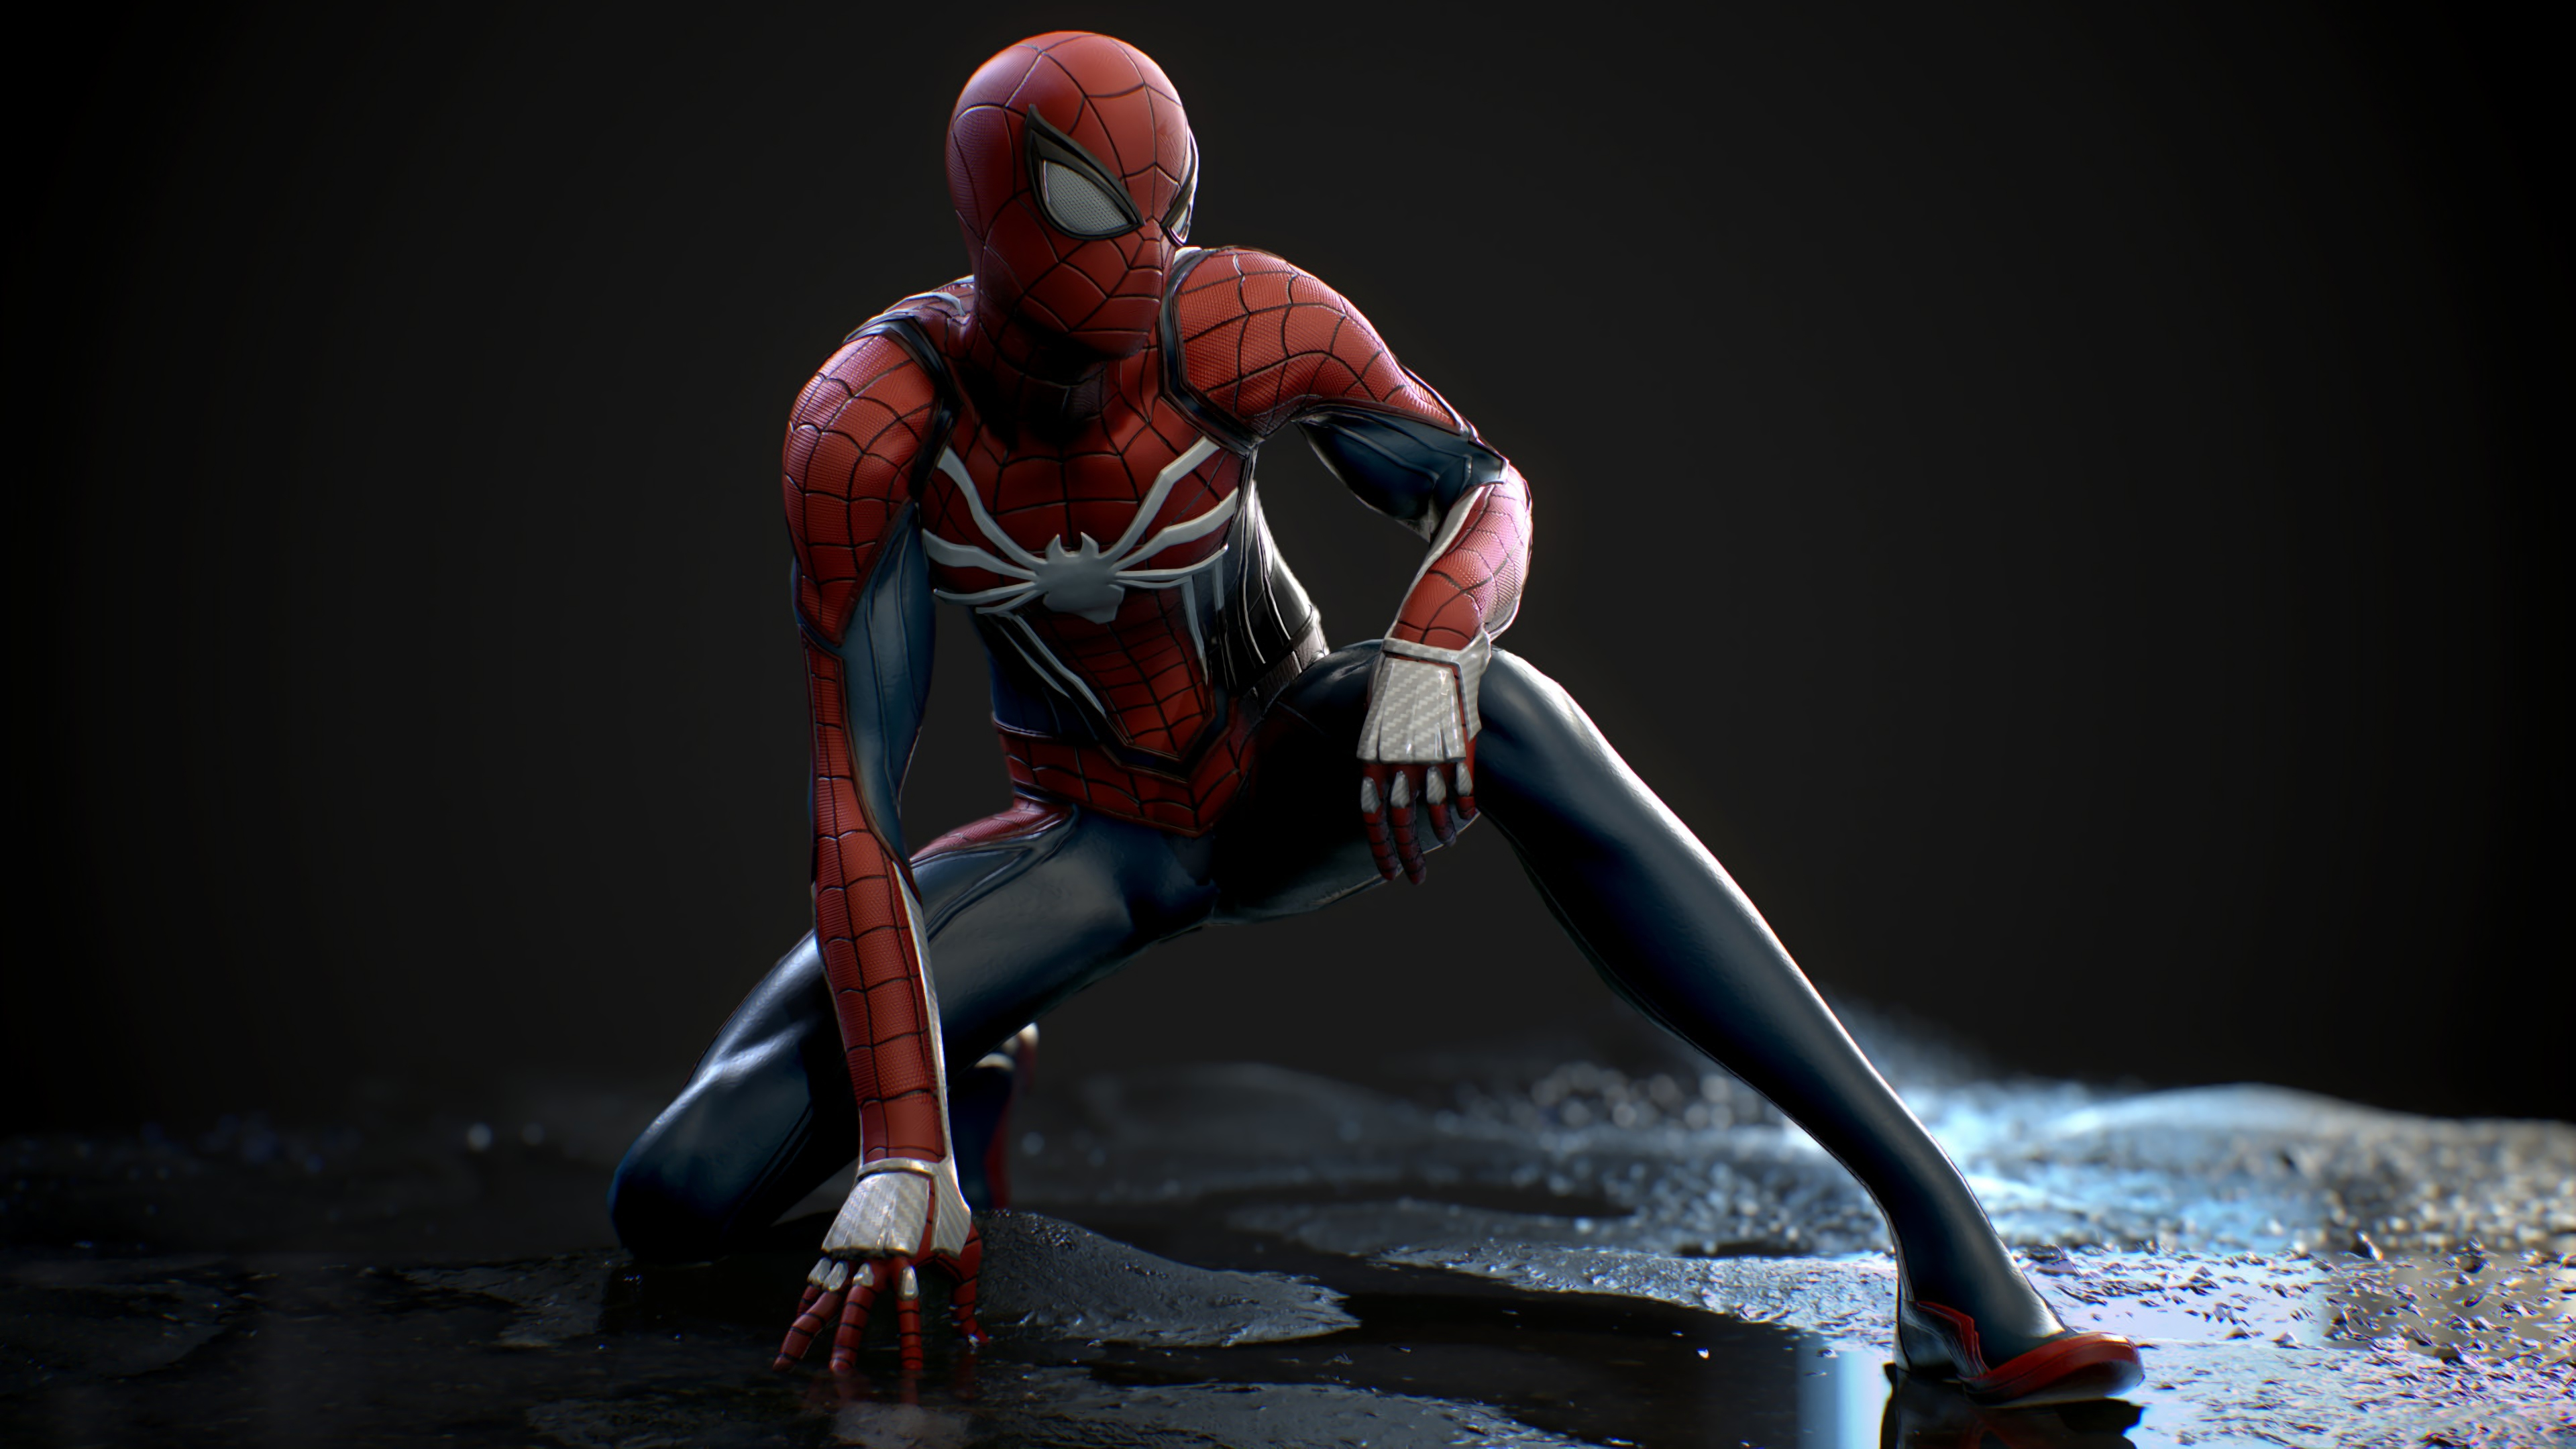 Spider Man Ps4 4k Wallpaper: 1920x1080 Spiderman PS4 Pro4k 2018 Laptop Full HD 1080P HD